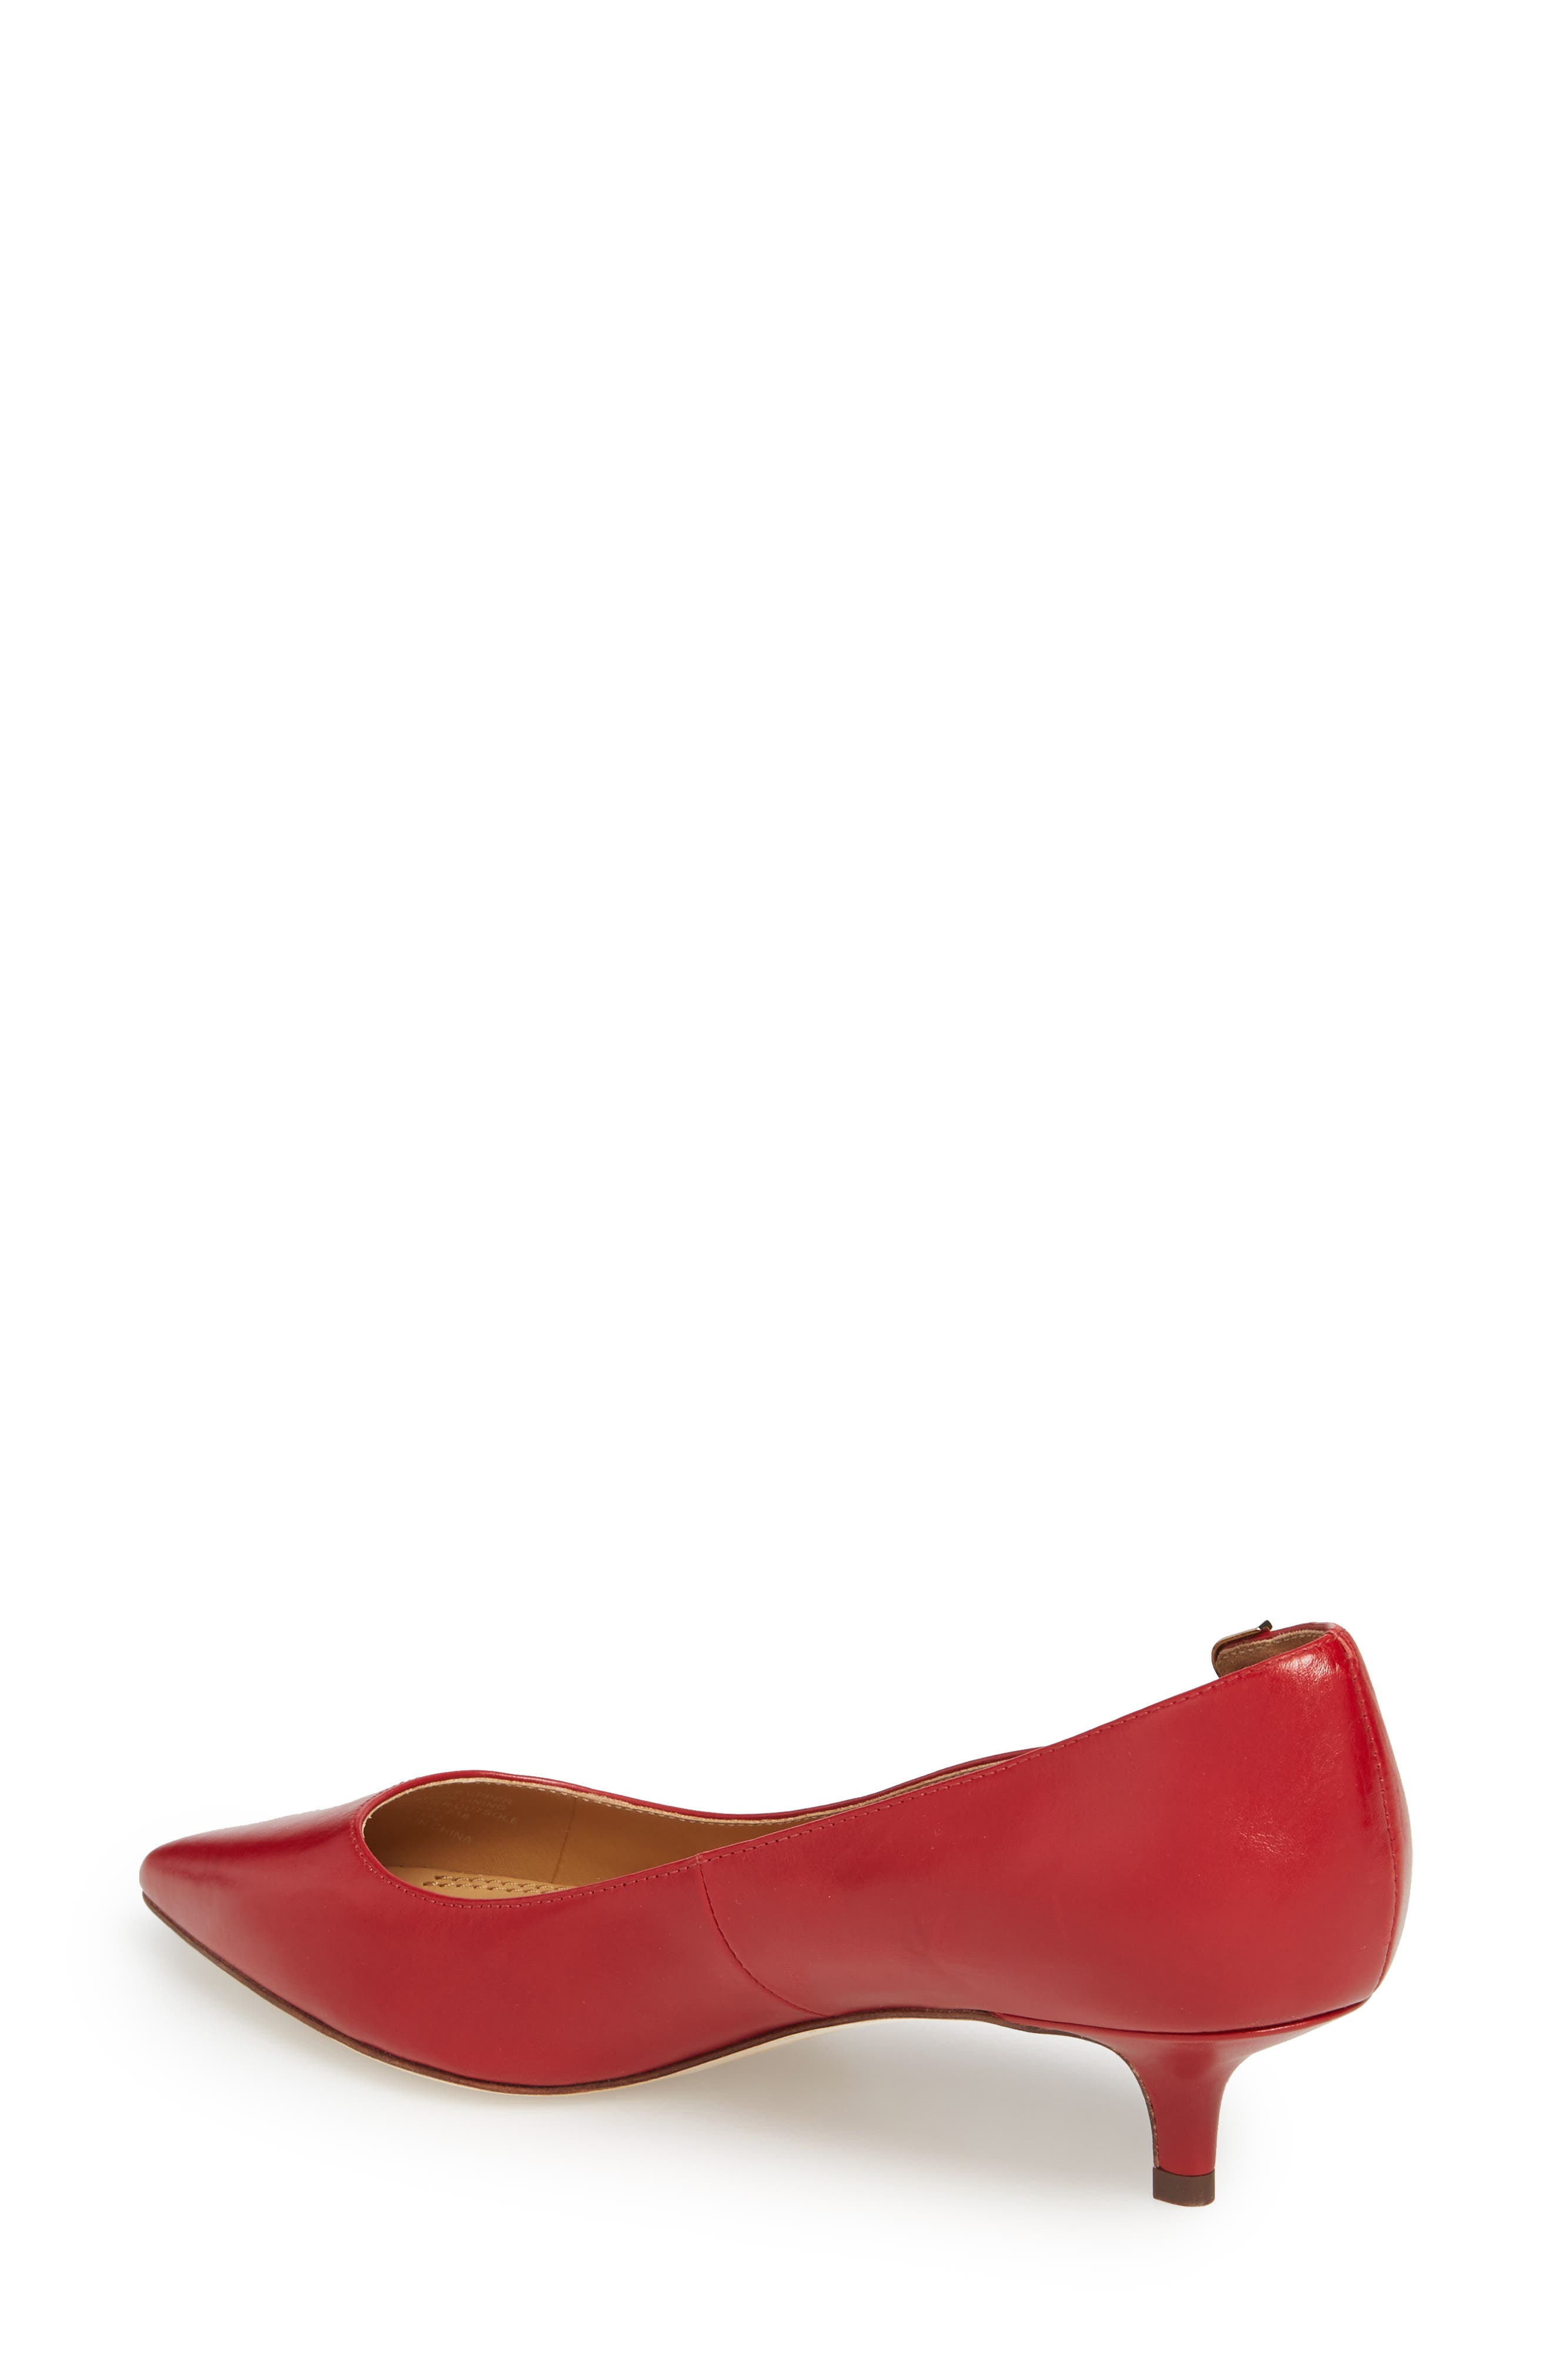 TORY BURCH,                             Elizabeth Pointy Toe Pump,                             Alternate thumbnail 2, color,                             601